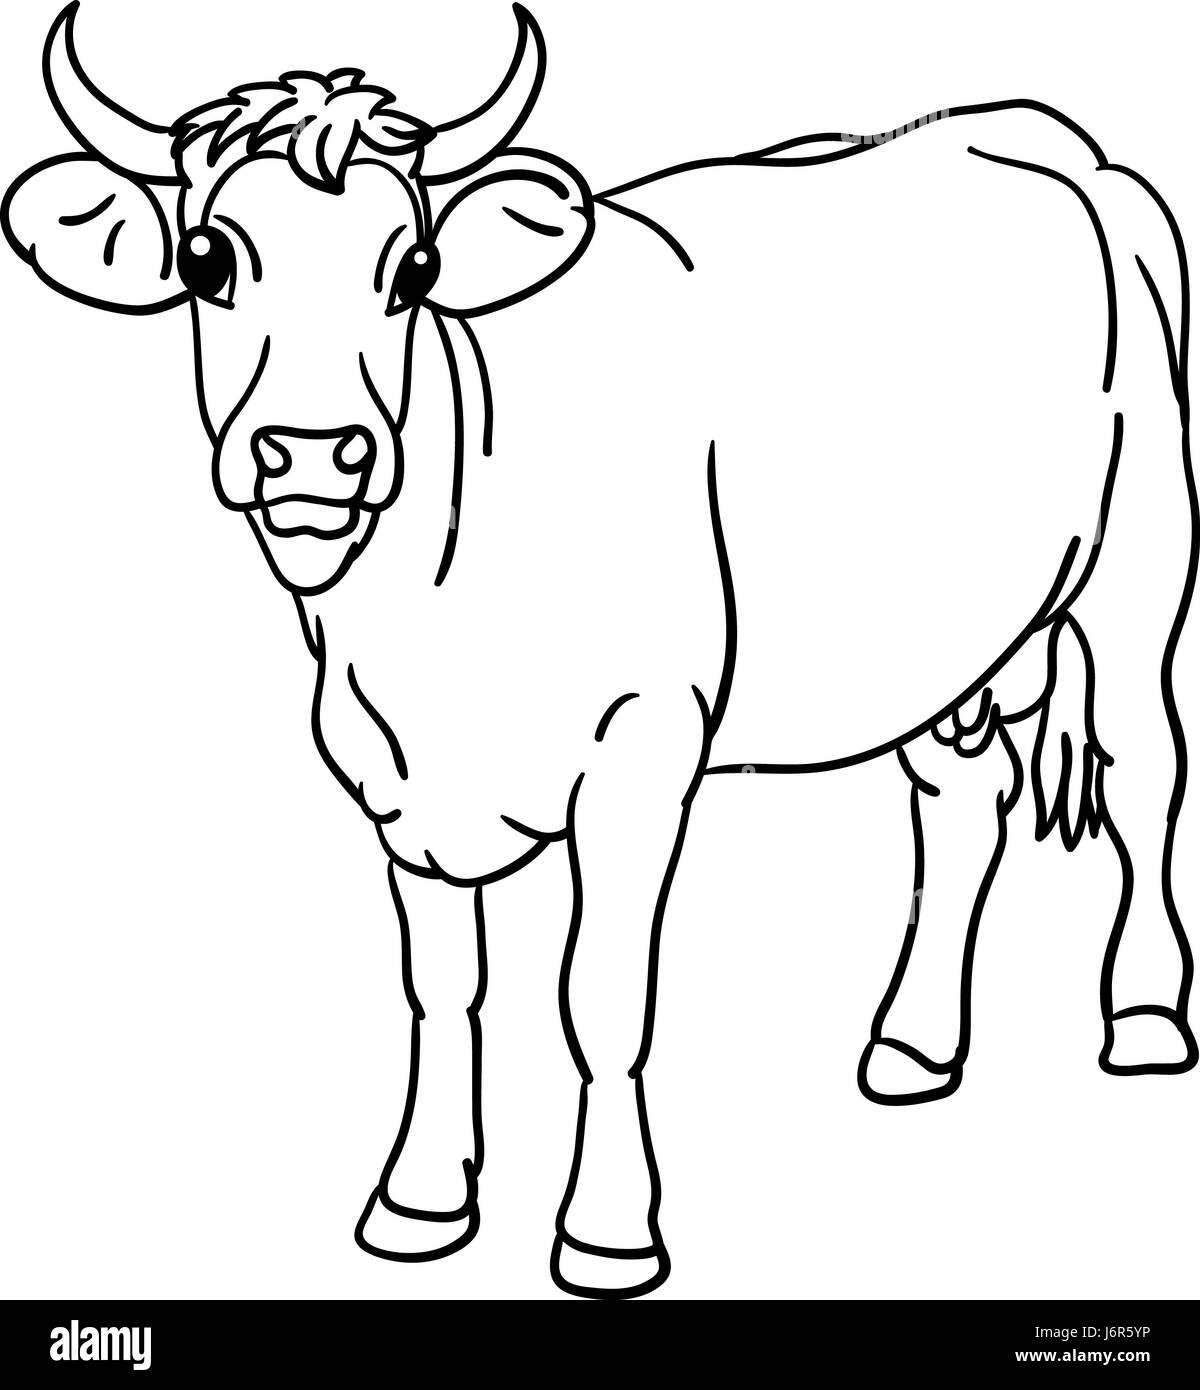 Uncategorized How To Draw Cow isolated animal illustration cow draw art mammal stock photo agriculture